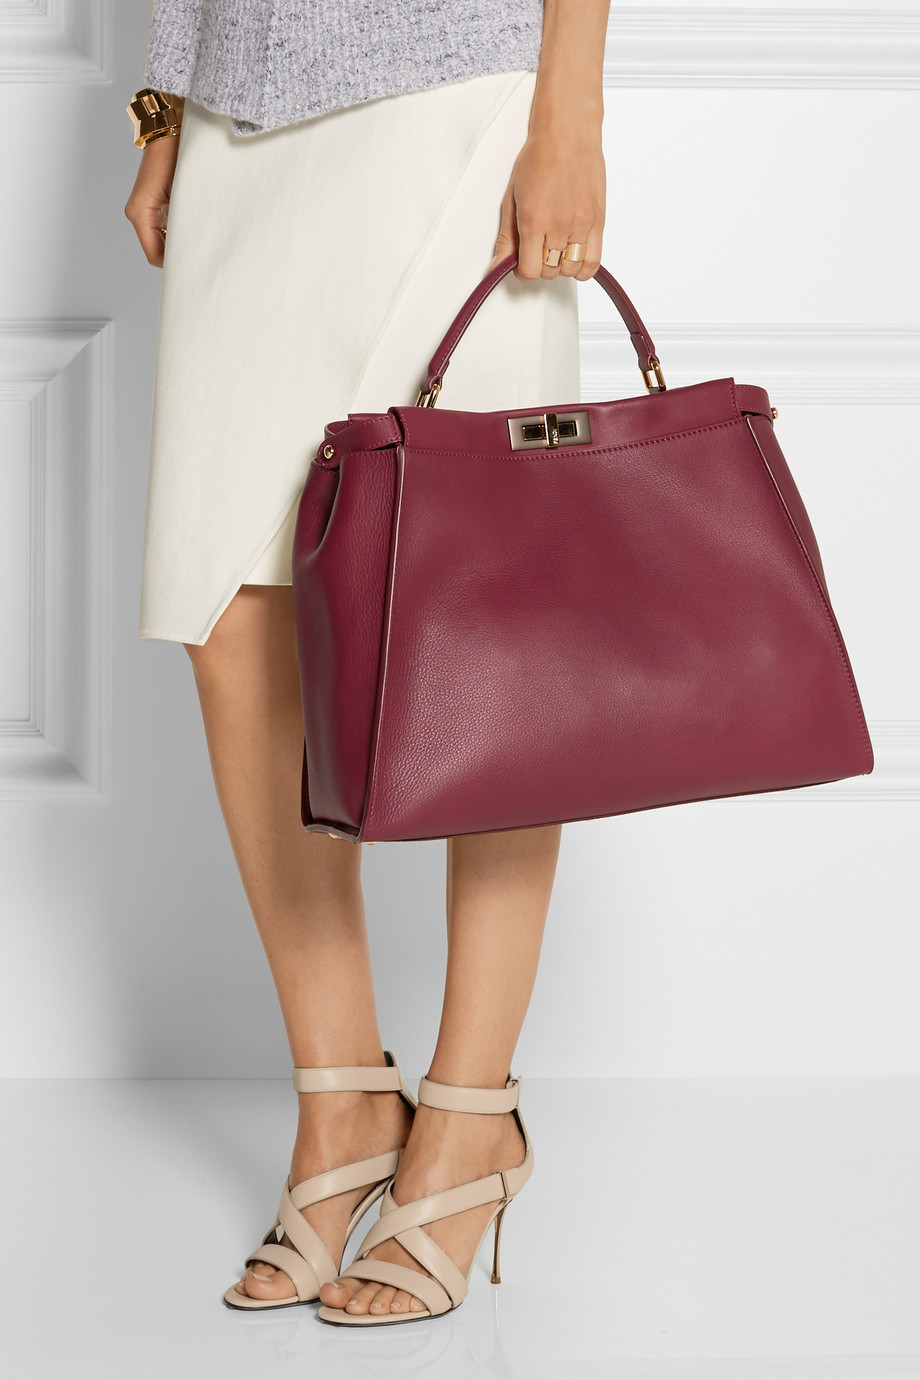 690af5c570d6 ... coupon code for lyst fendi peekaboo medium leather tote in red 1b07b  87909